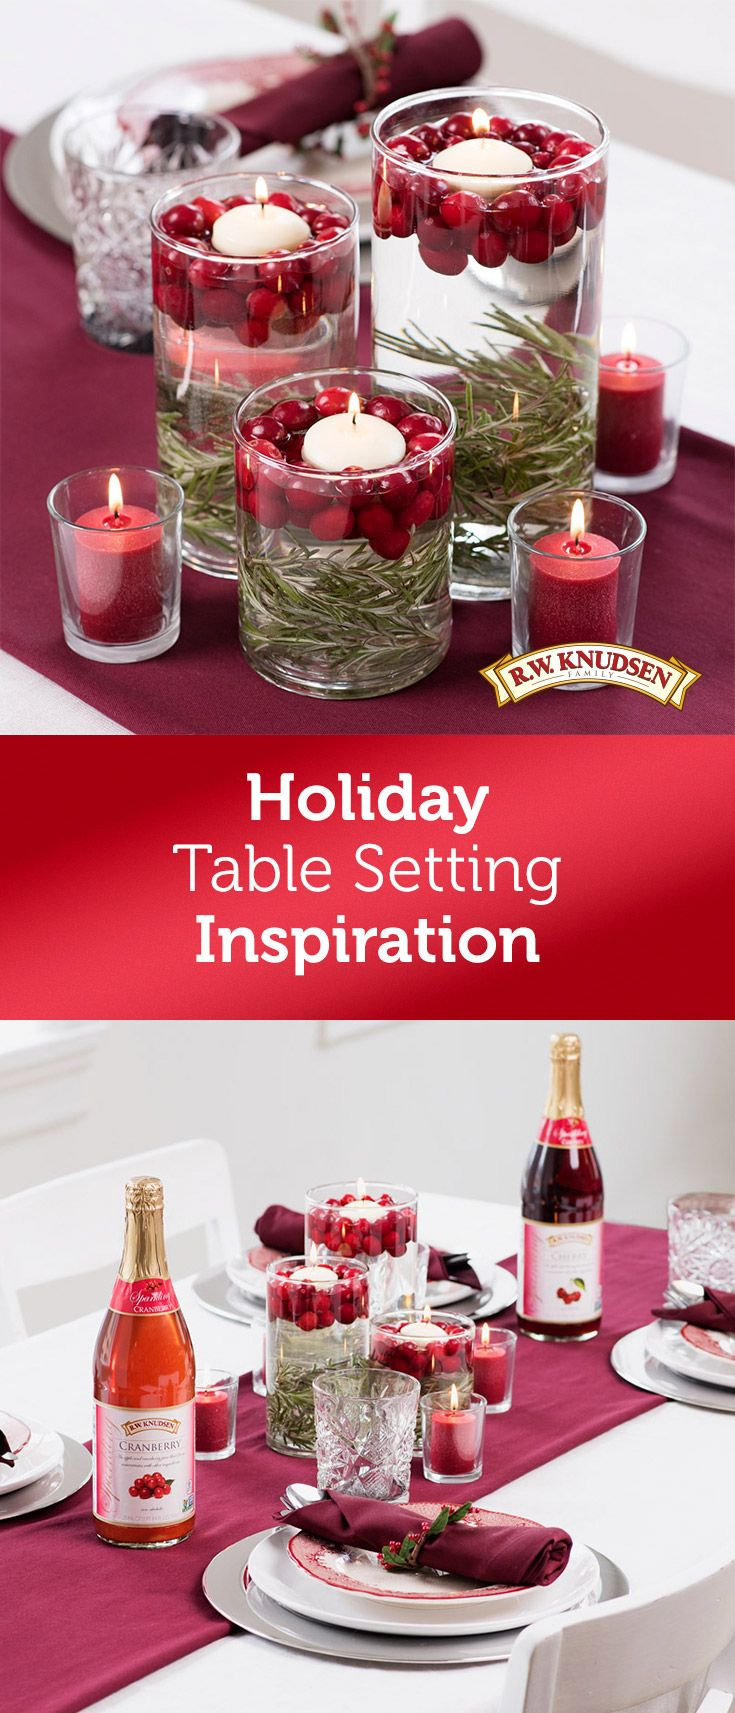 Celebrate around a festive centerpiece this holiday season. Fragrant cranberries and pine needles accent the warm glow of floating candles in this elegant tablescape.